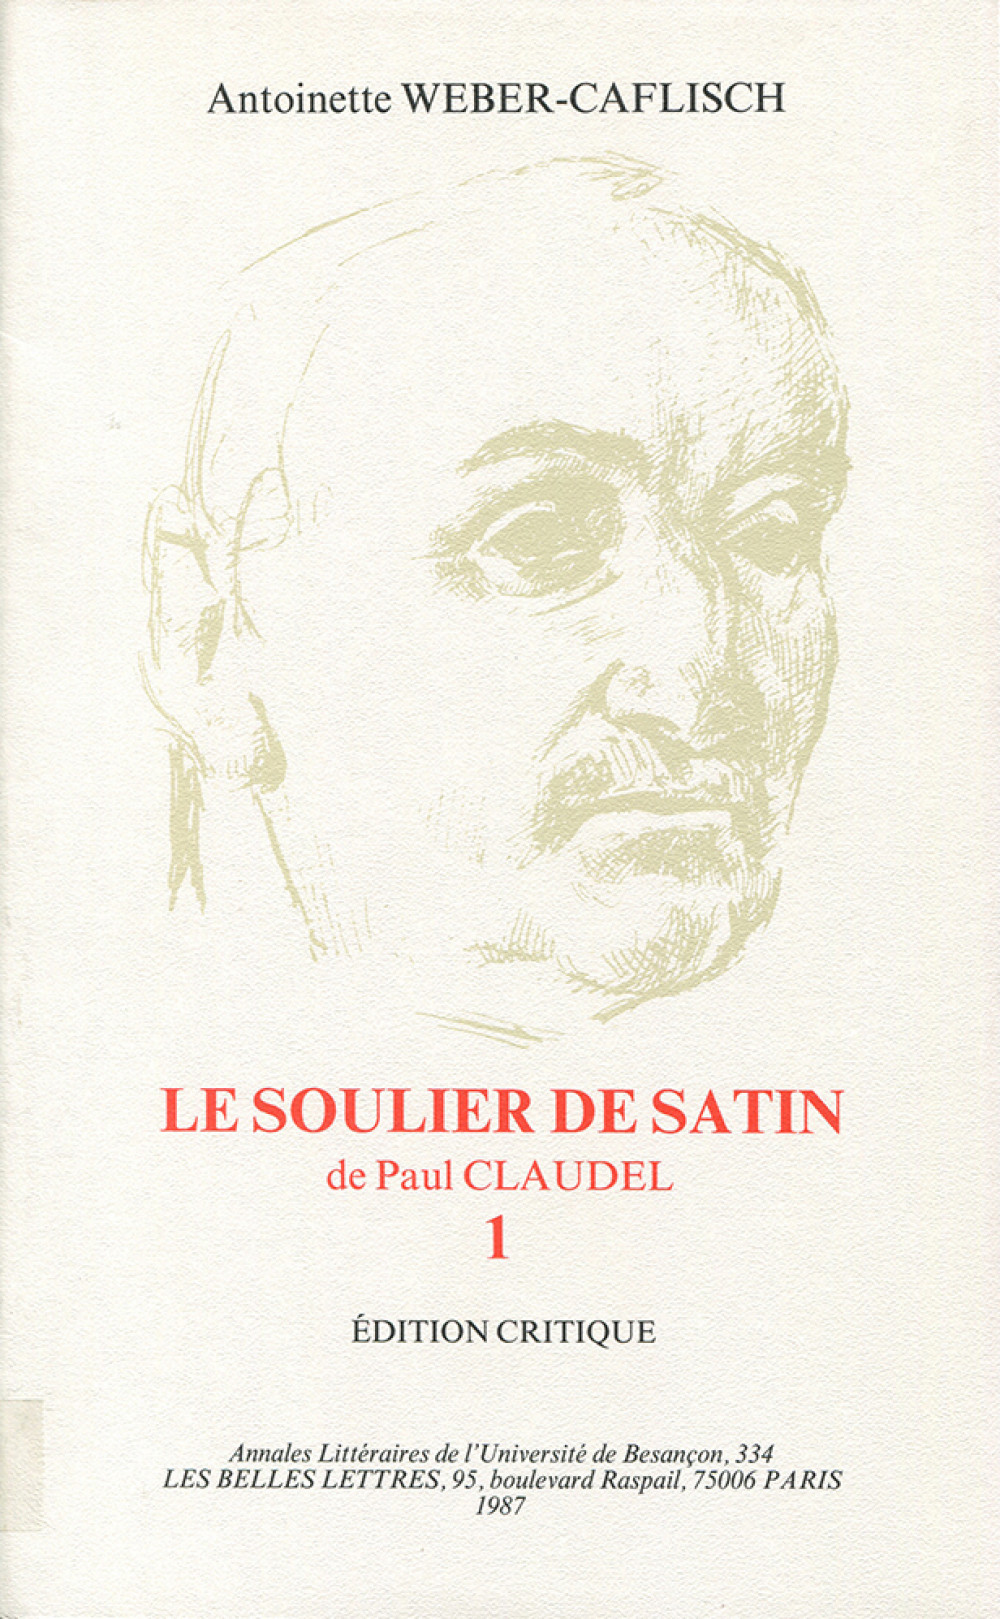 Le soulier de satin de Paul Claudel 1